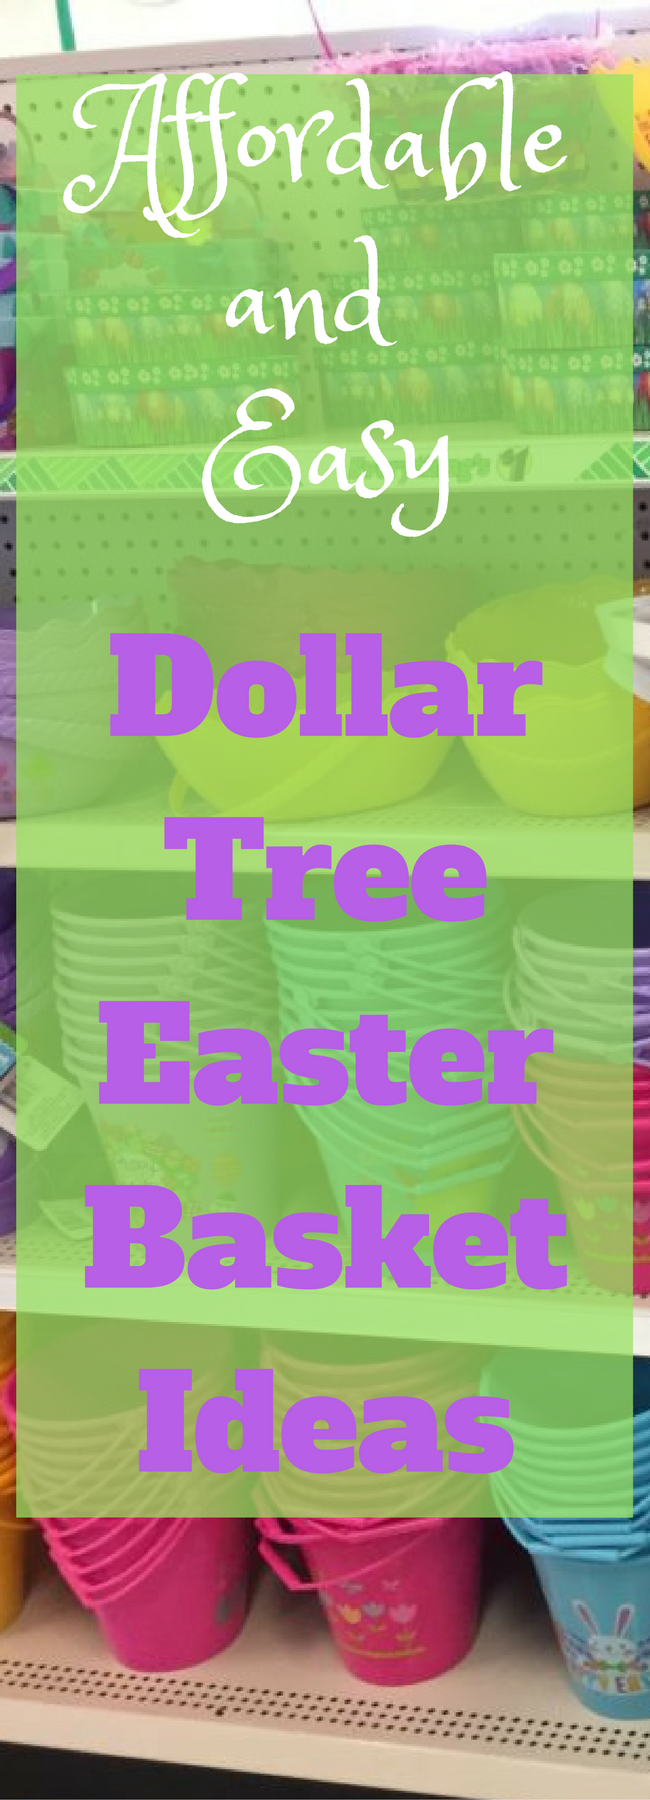 Dollar Tree Easter Basket Ideas easter basket ideas easter baskets easter basket ideas for boys easter basket ideas for kids easter basket ideas for teens easter basket goodies diy easter basket